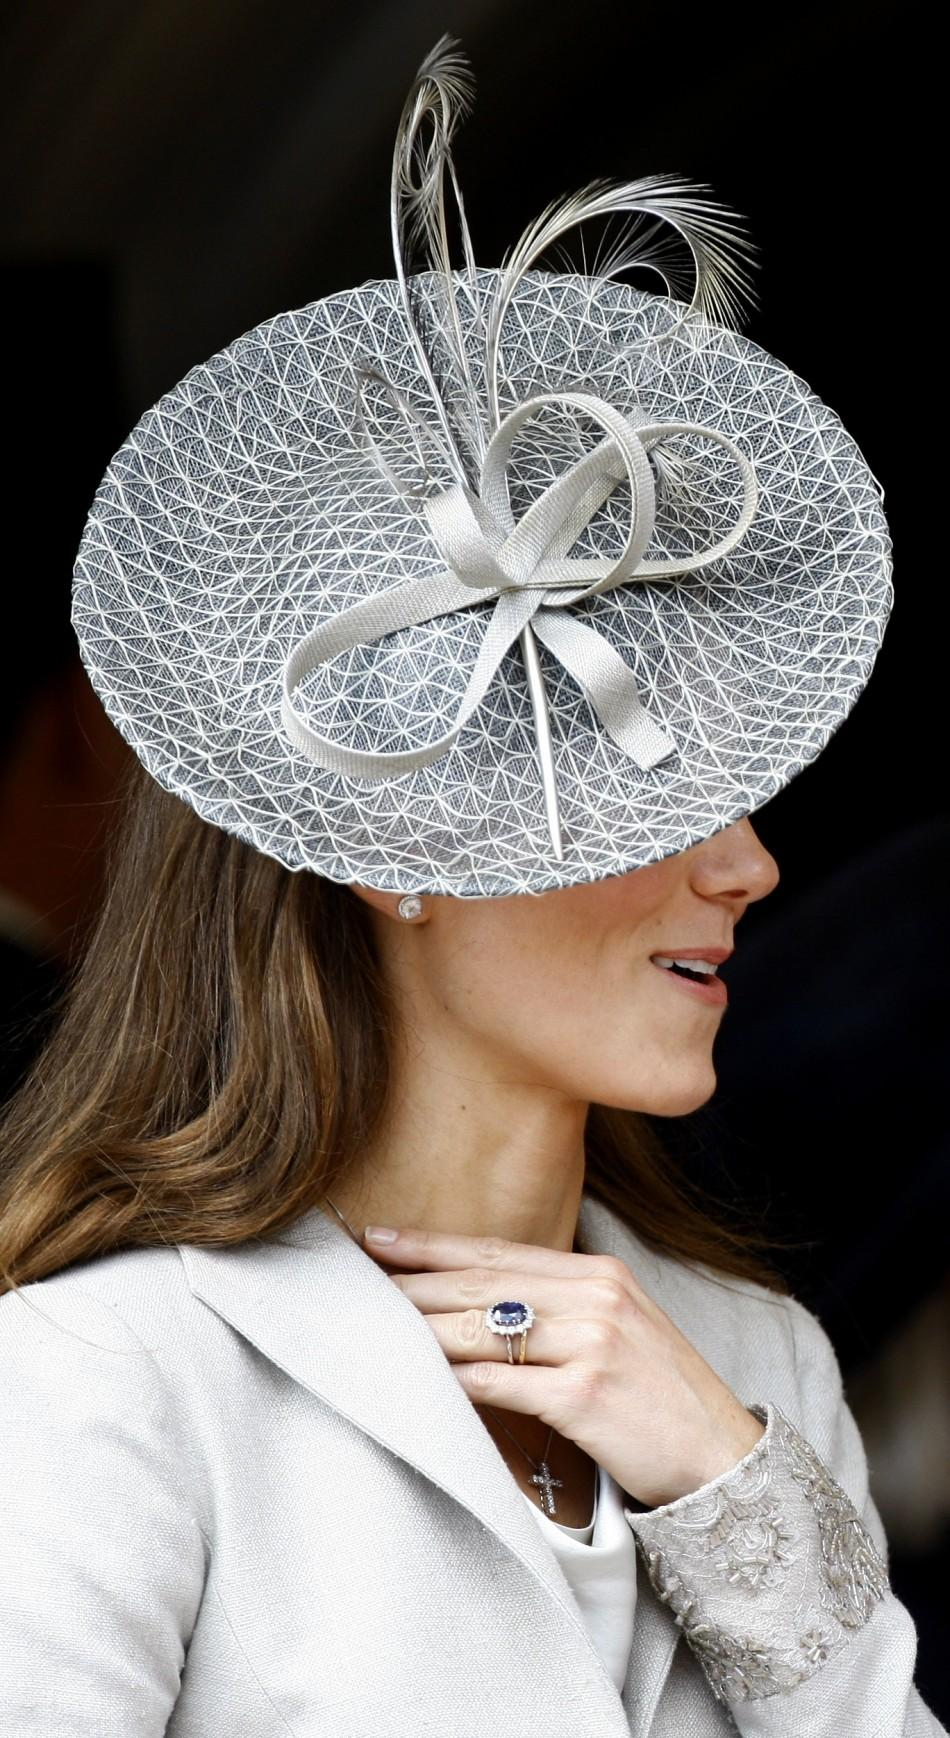 Kate Middleton in signature style at 'Order of the Garter' service.